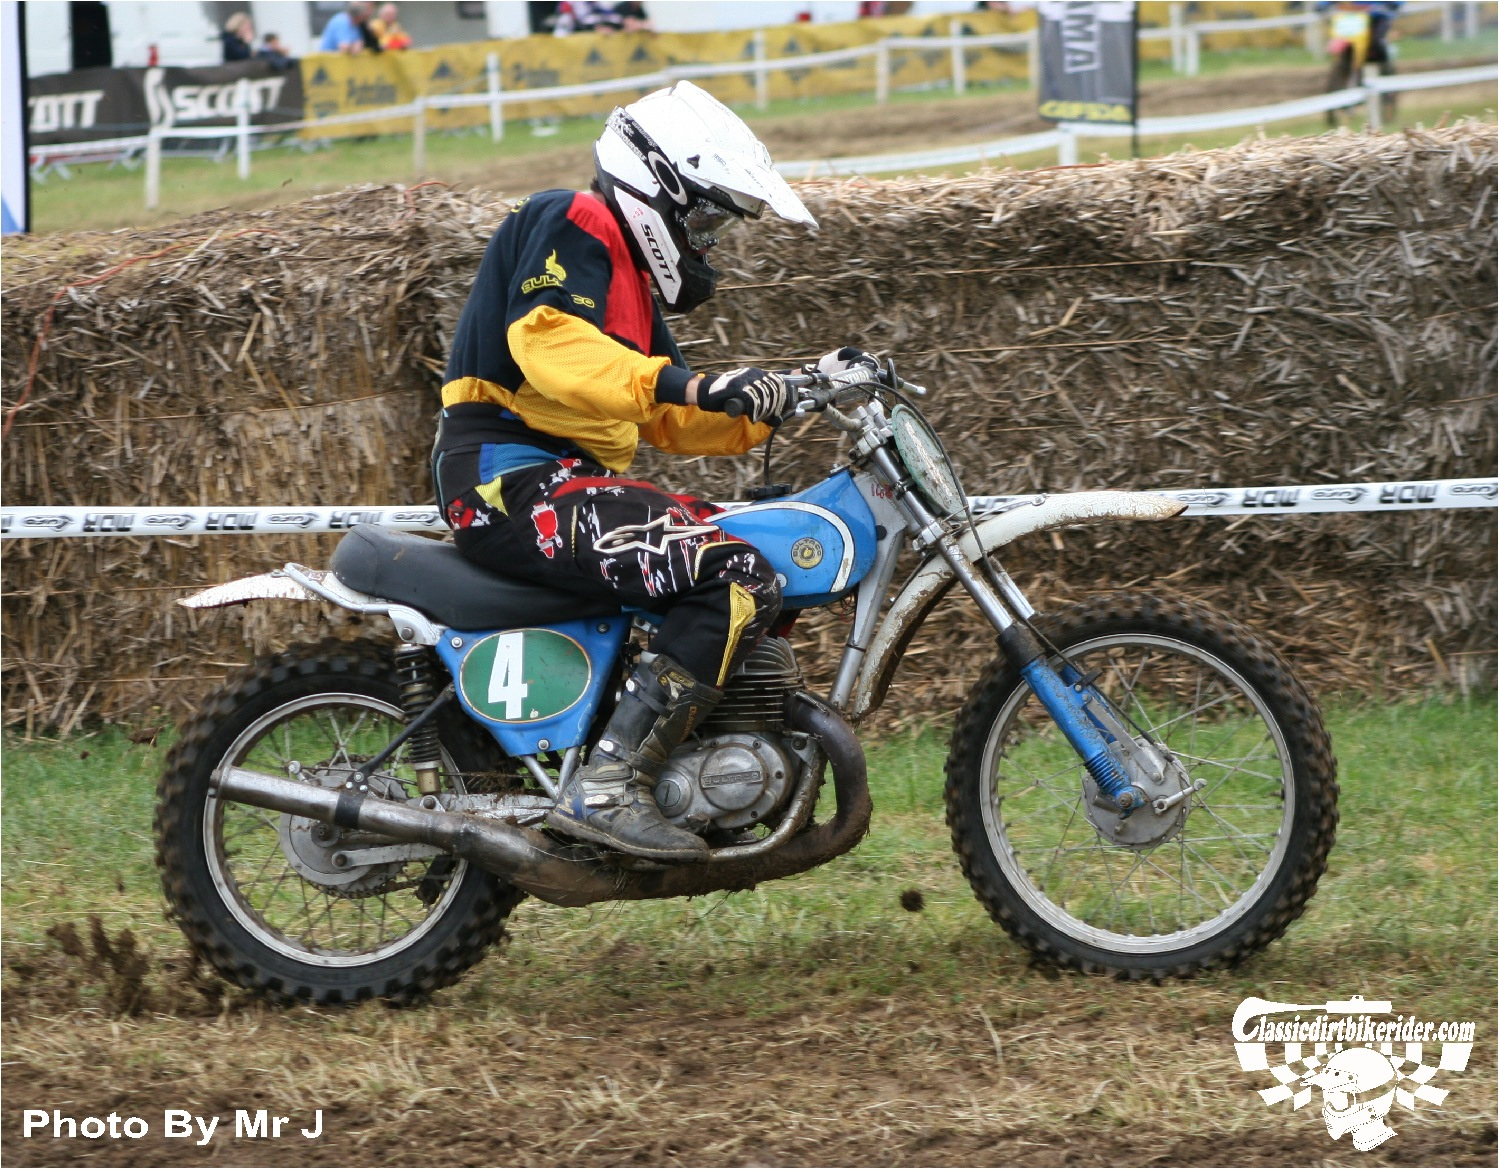 king of the castle 2015 photos Farleigh Castle twinshock motocross classicdirtbikerider.com 127